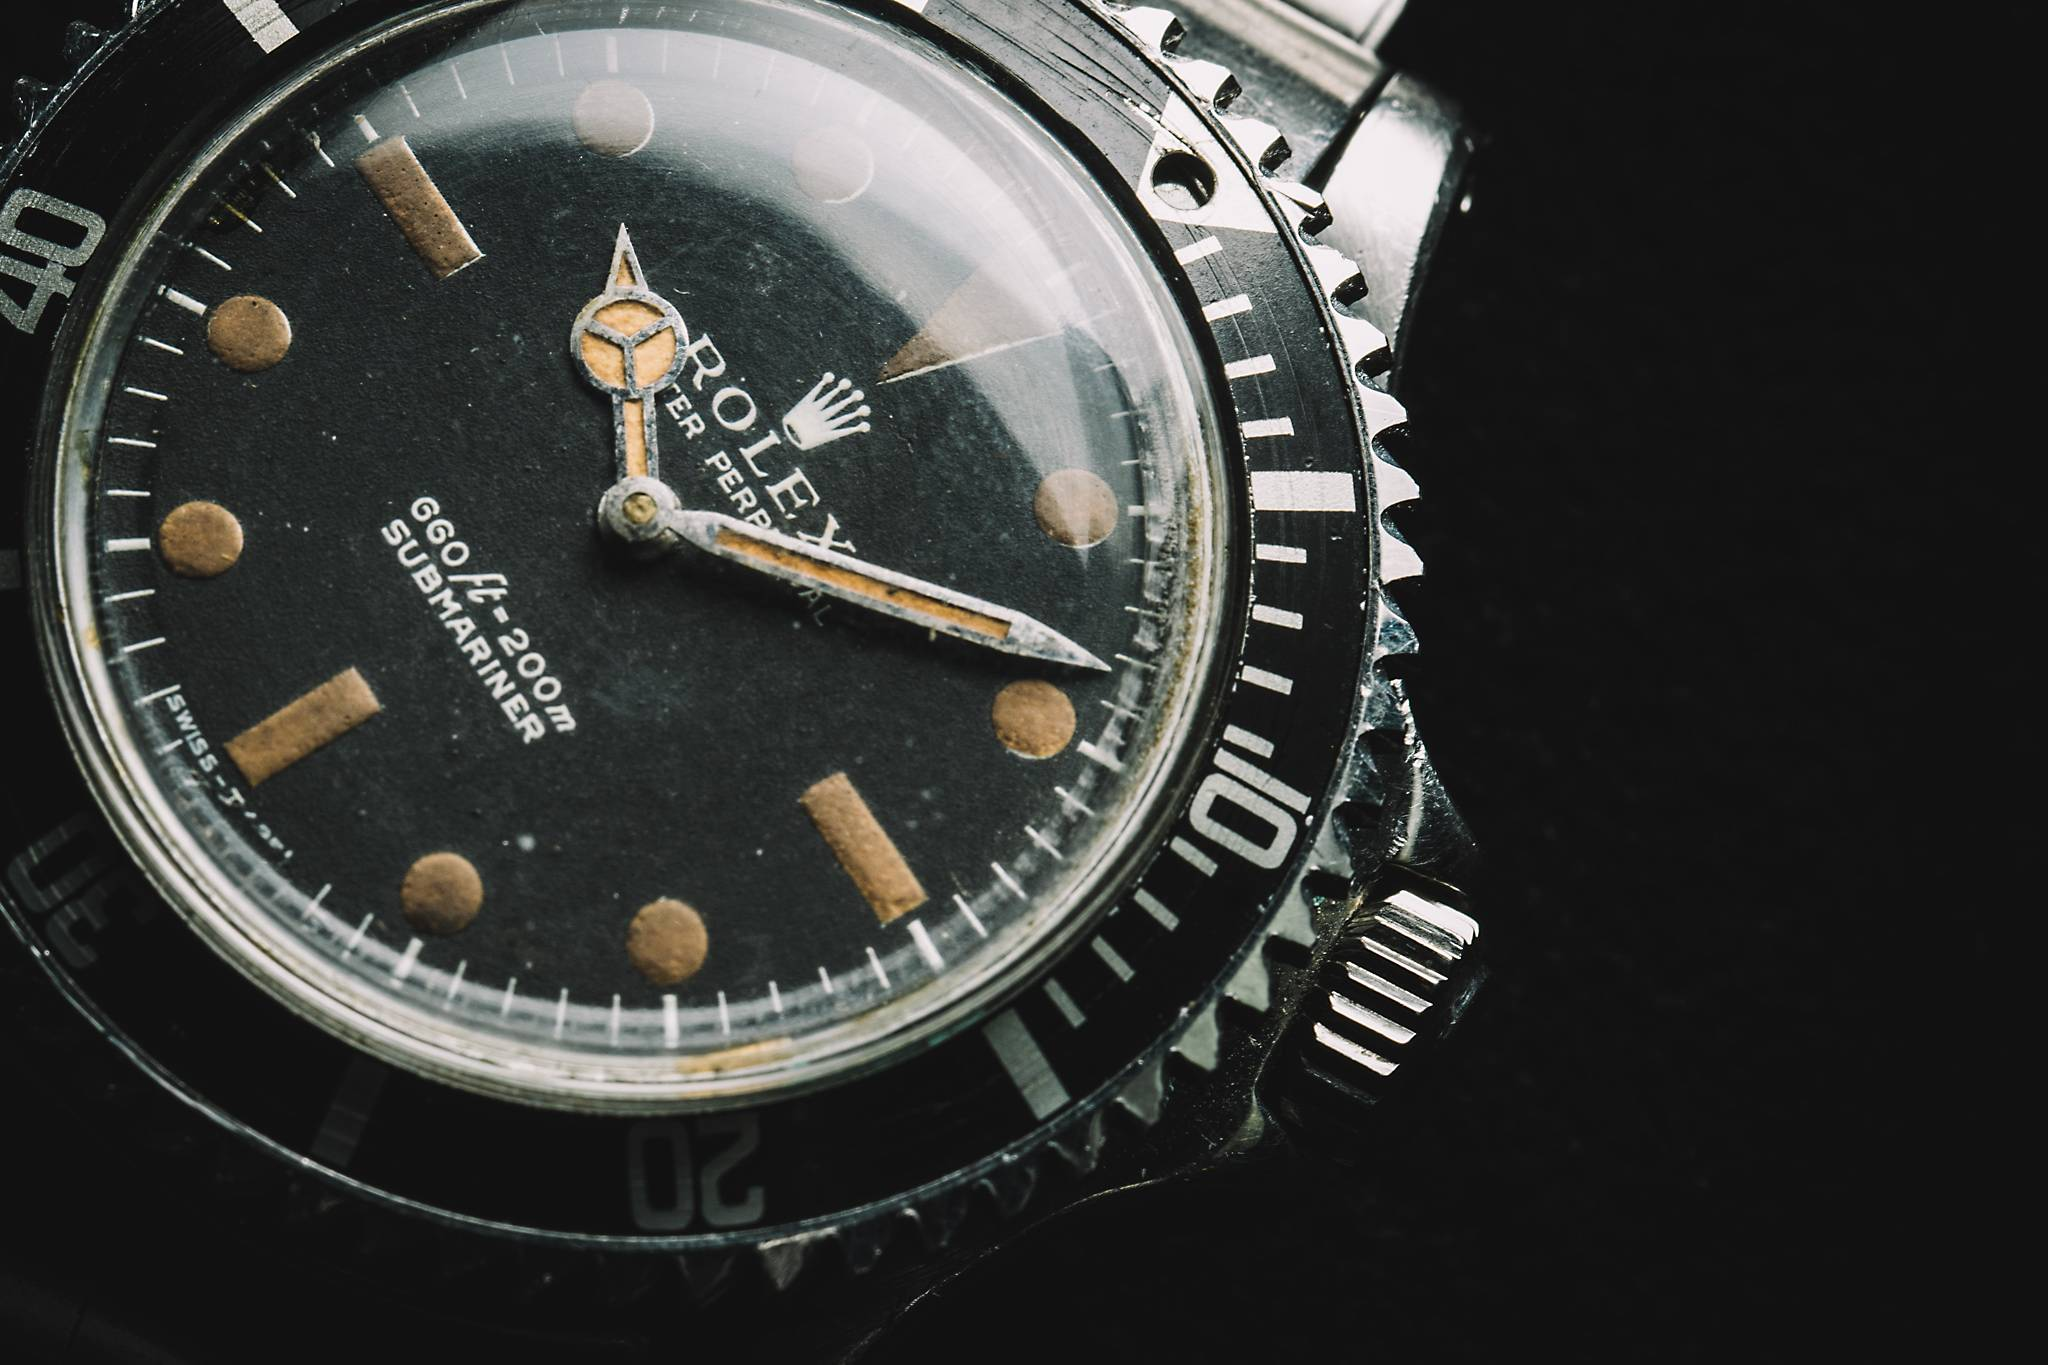 Rolex 'James Bond' Submariner from 'Live and Let Die', Reference 5513, Stainless Steel, 1972 Dial